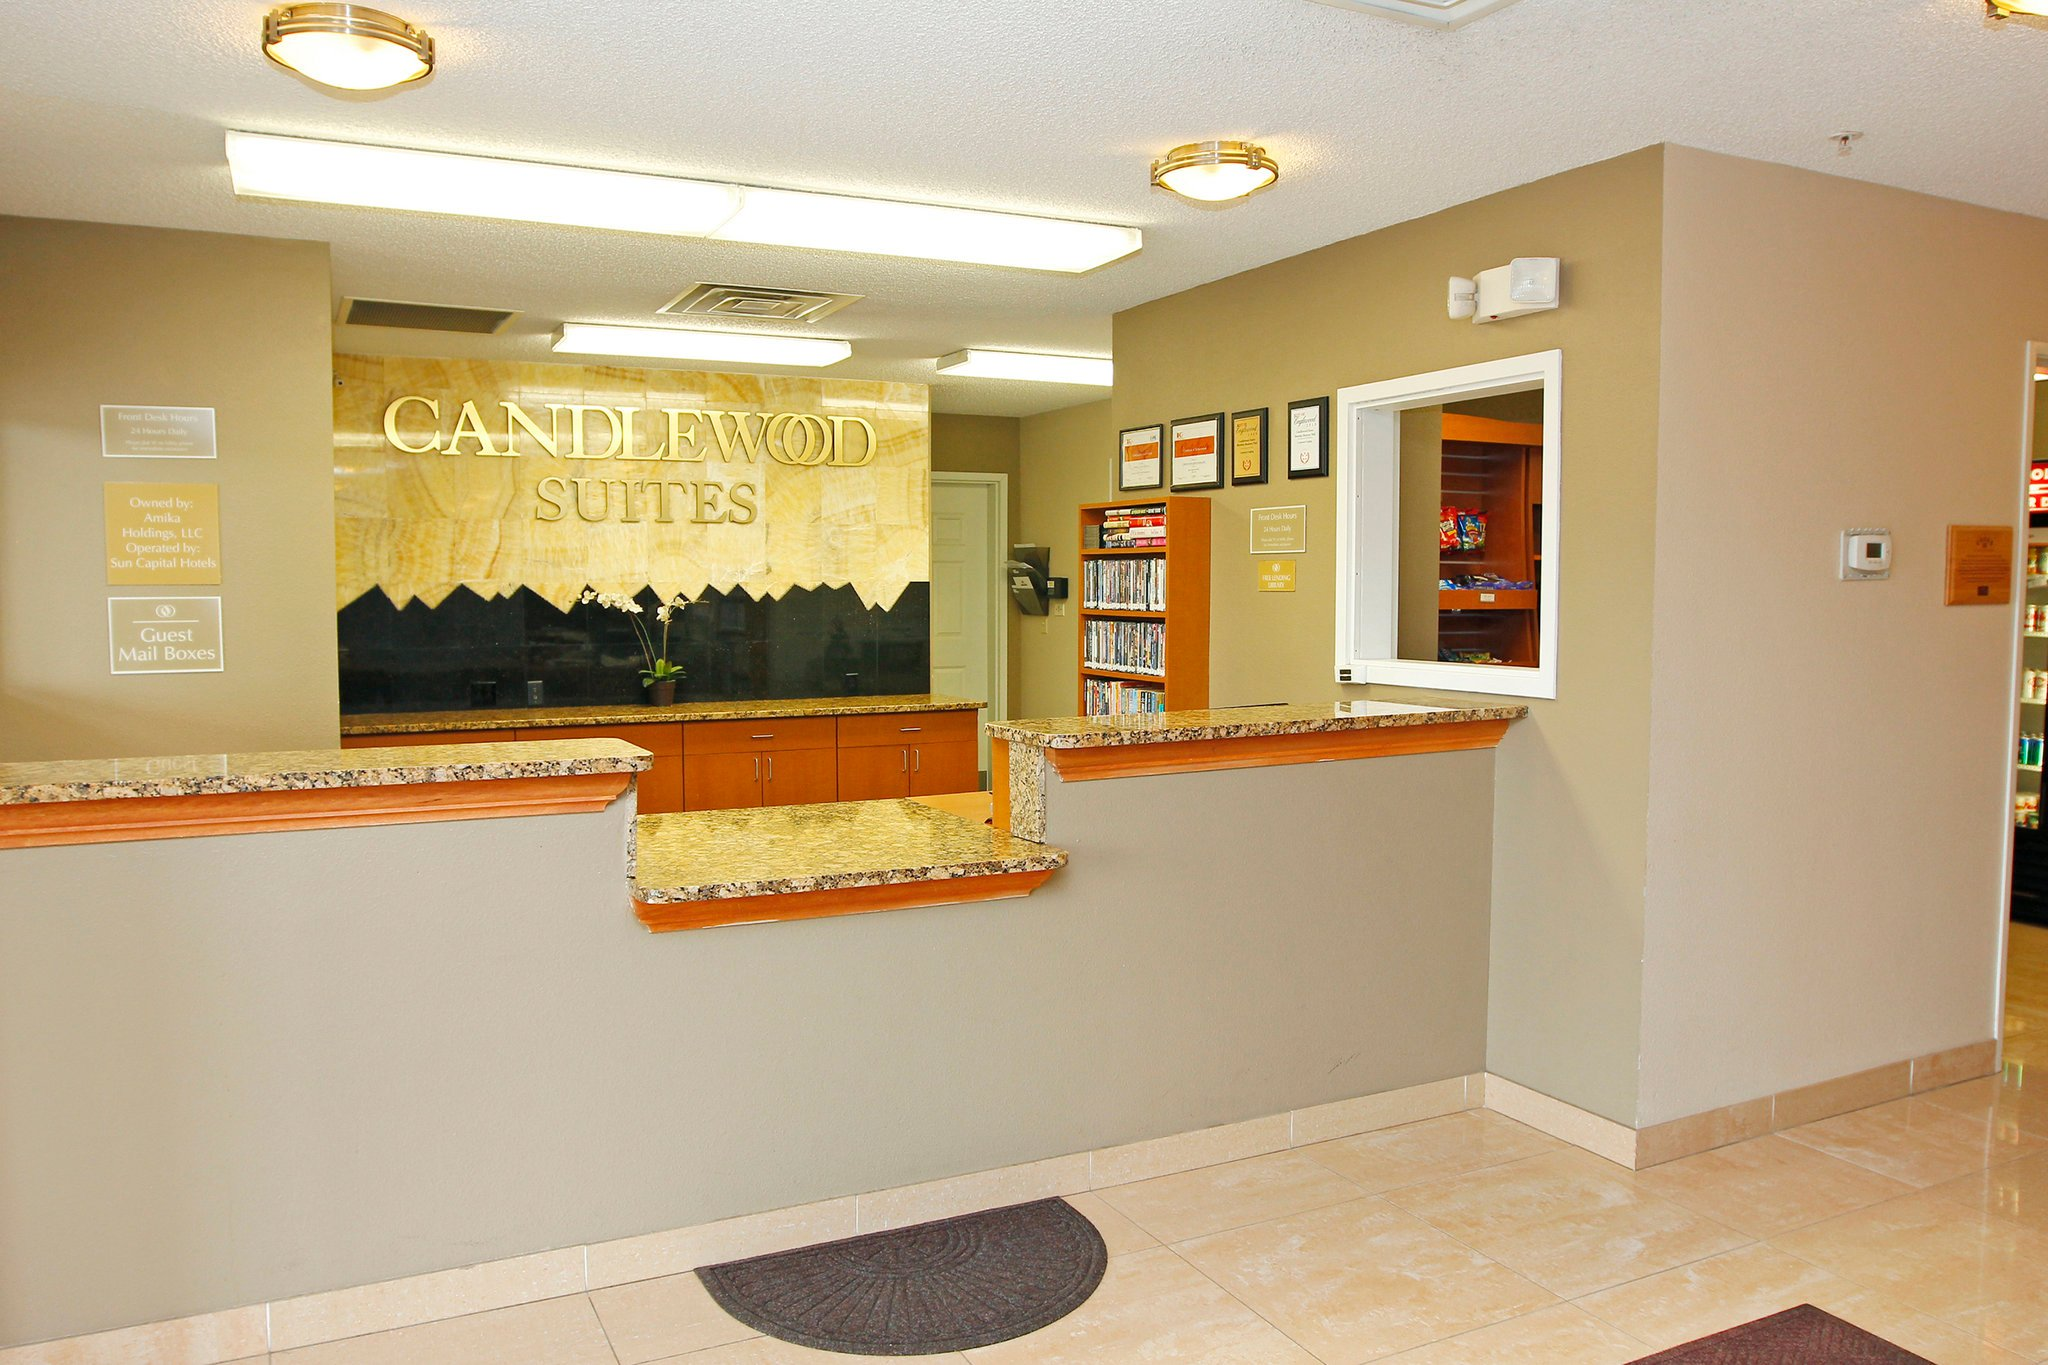 Candlewood Suites Meridian Business Center